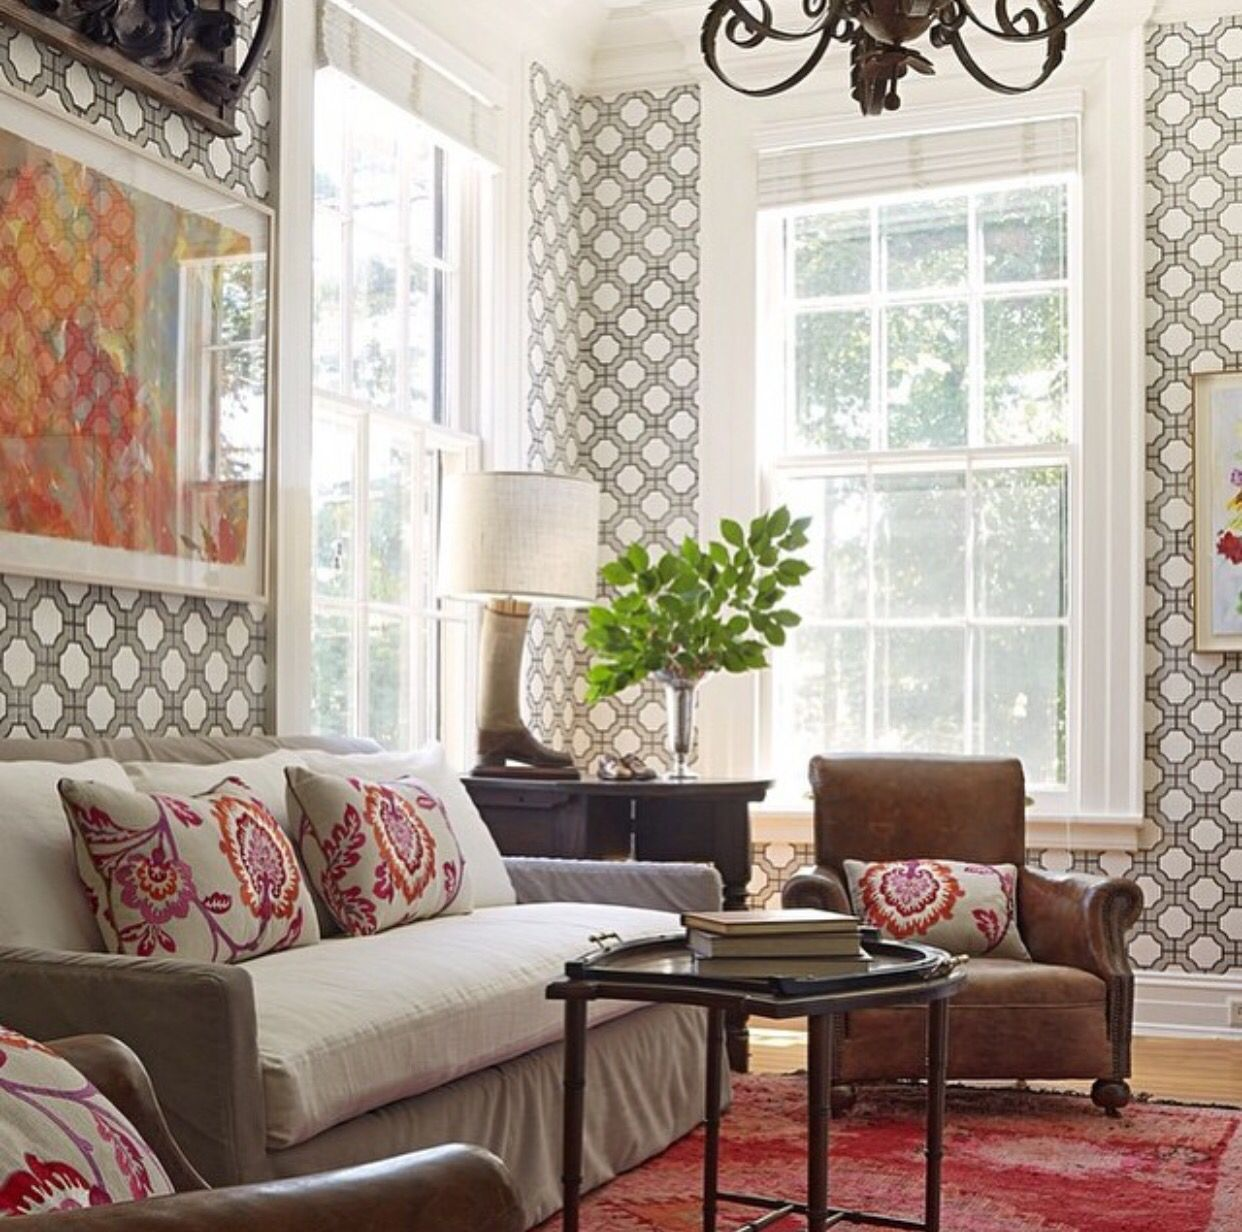 Pin By Whitney Sandlin On Ideas For My Dream Home